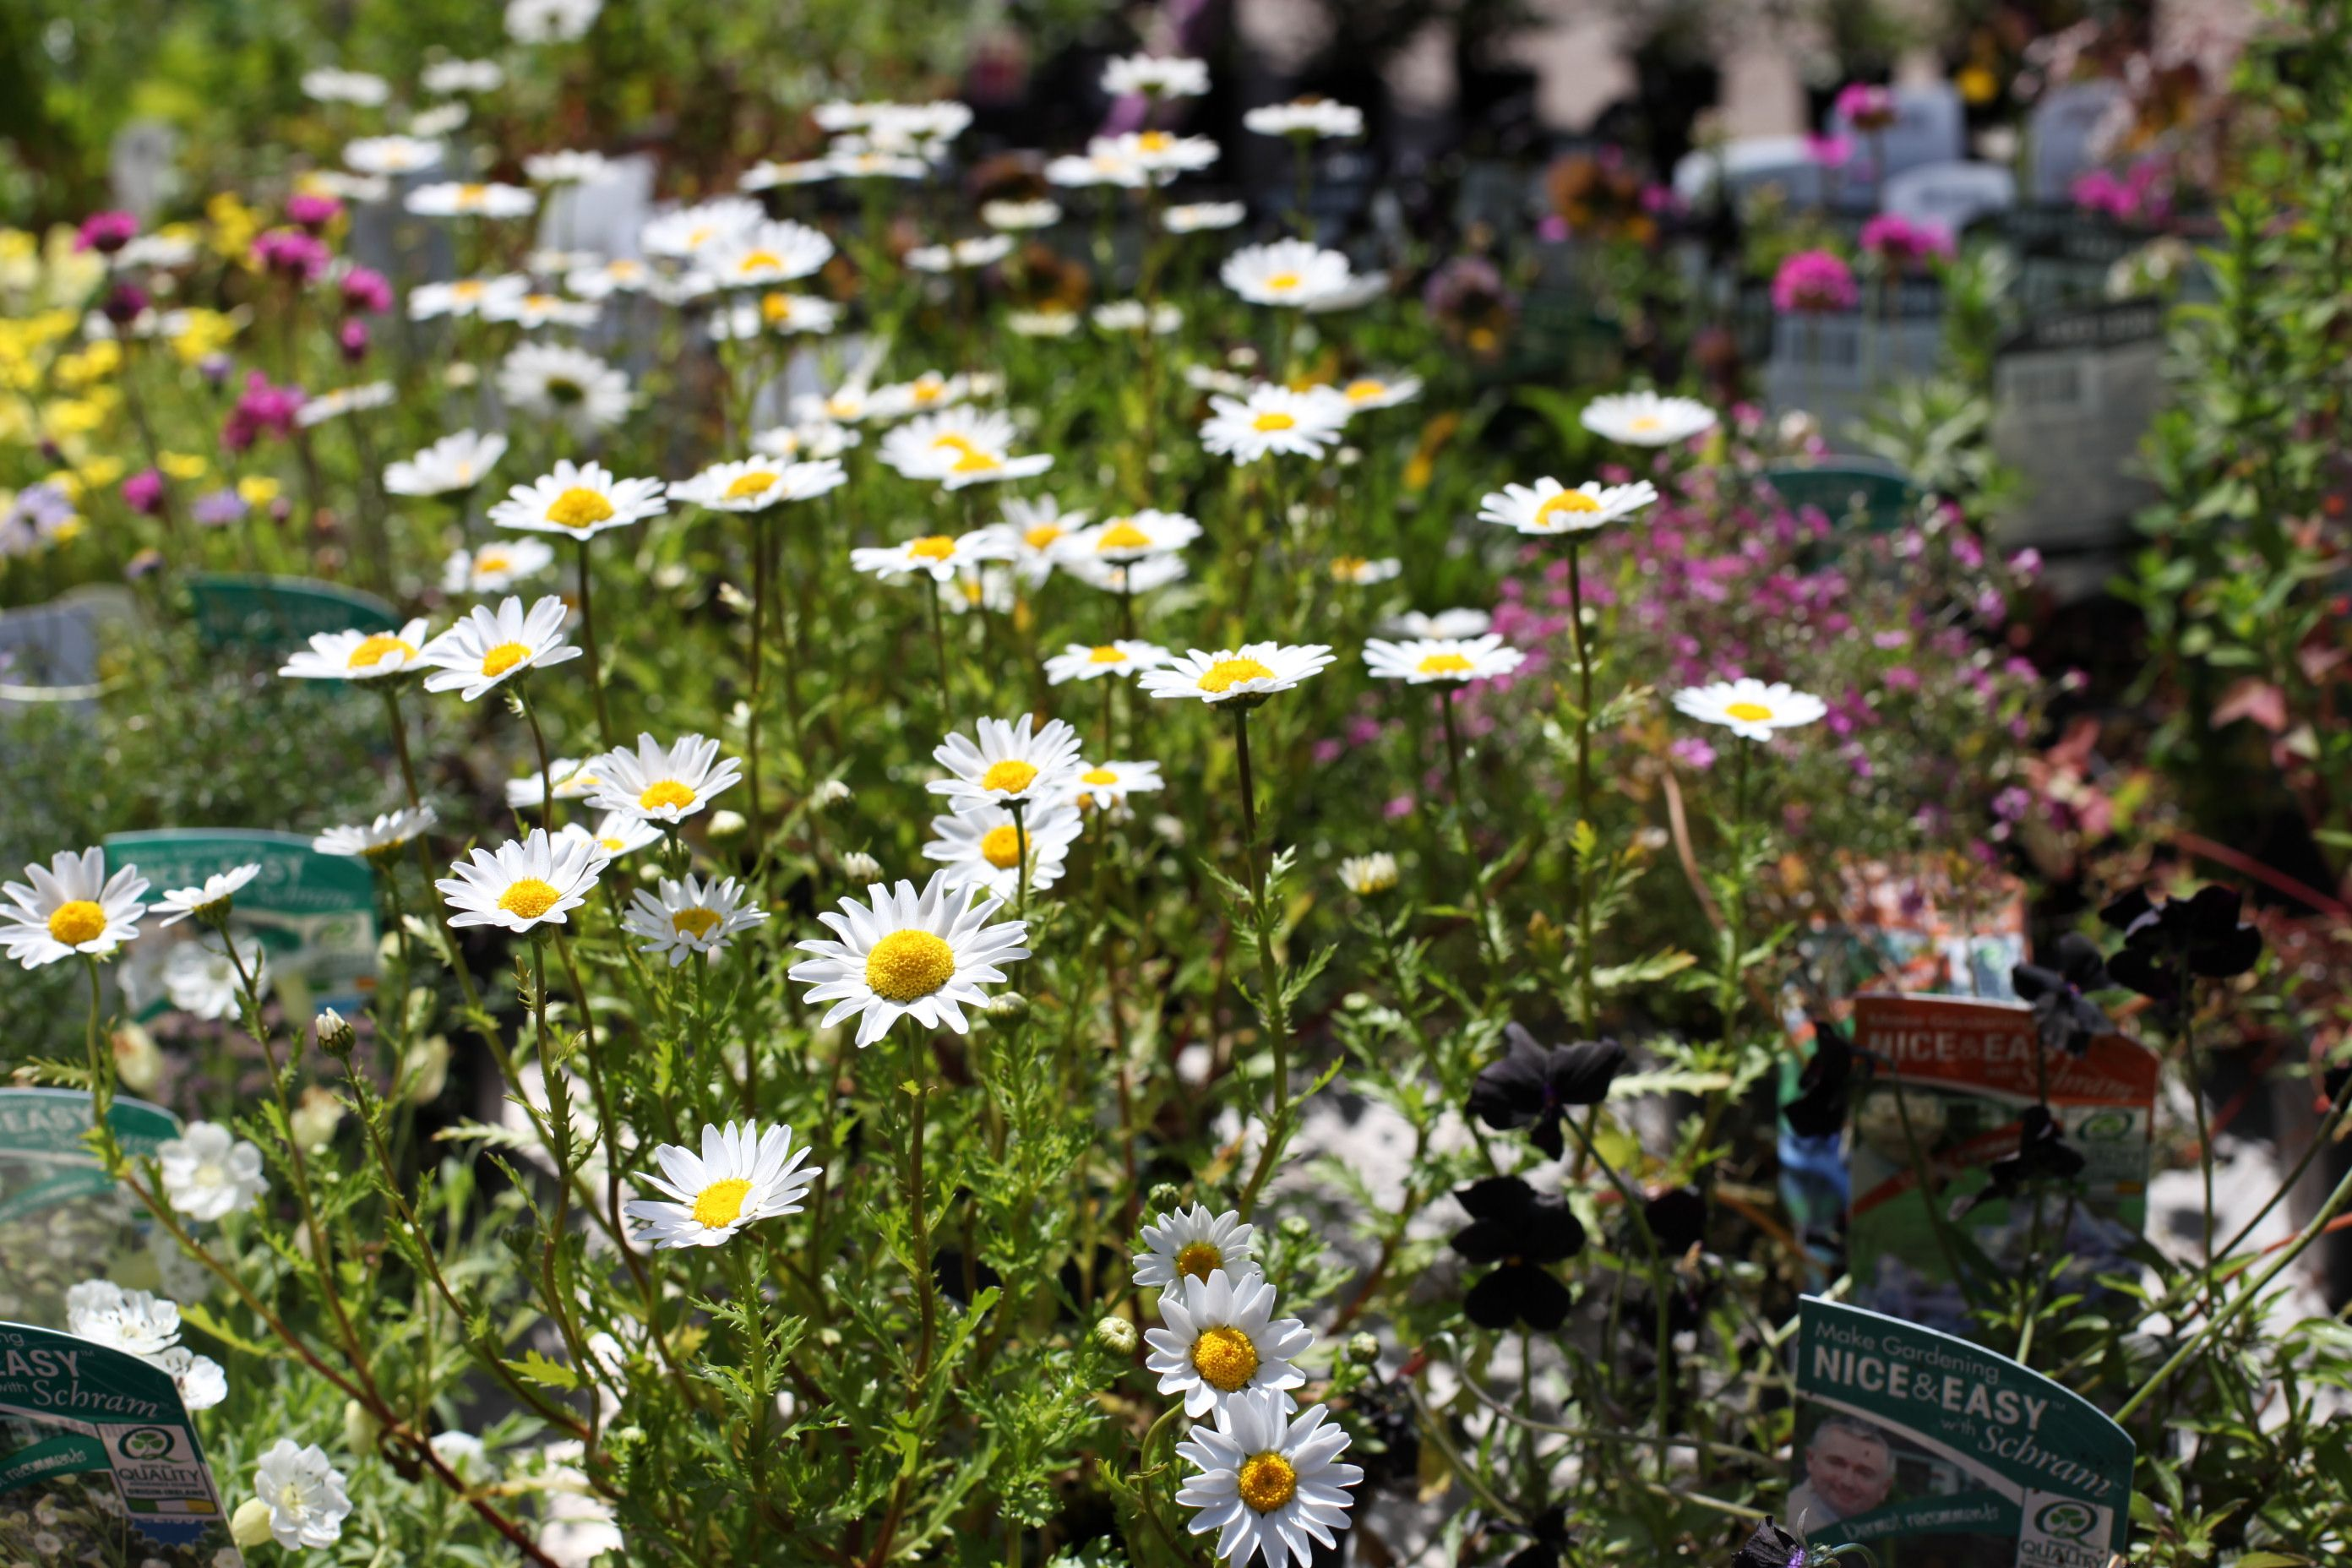 Chrysanthemum snowland masses of bright white daisy like flowers chrysanthemum snowland masses of bright white daisy like flowers cover this mounded plant throughout summer perfect for beds borders and containers izmirmasajfo